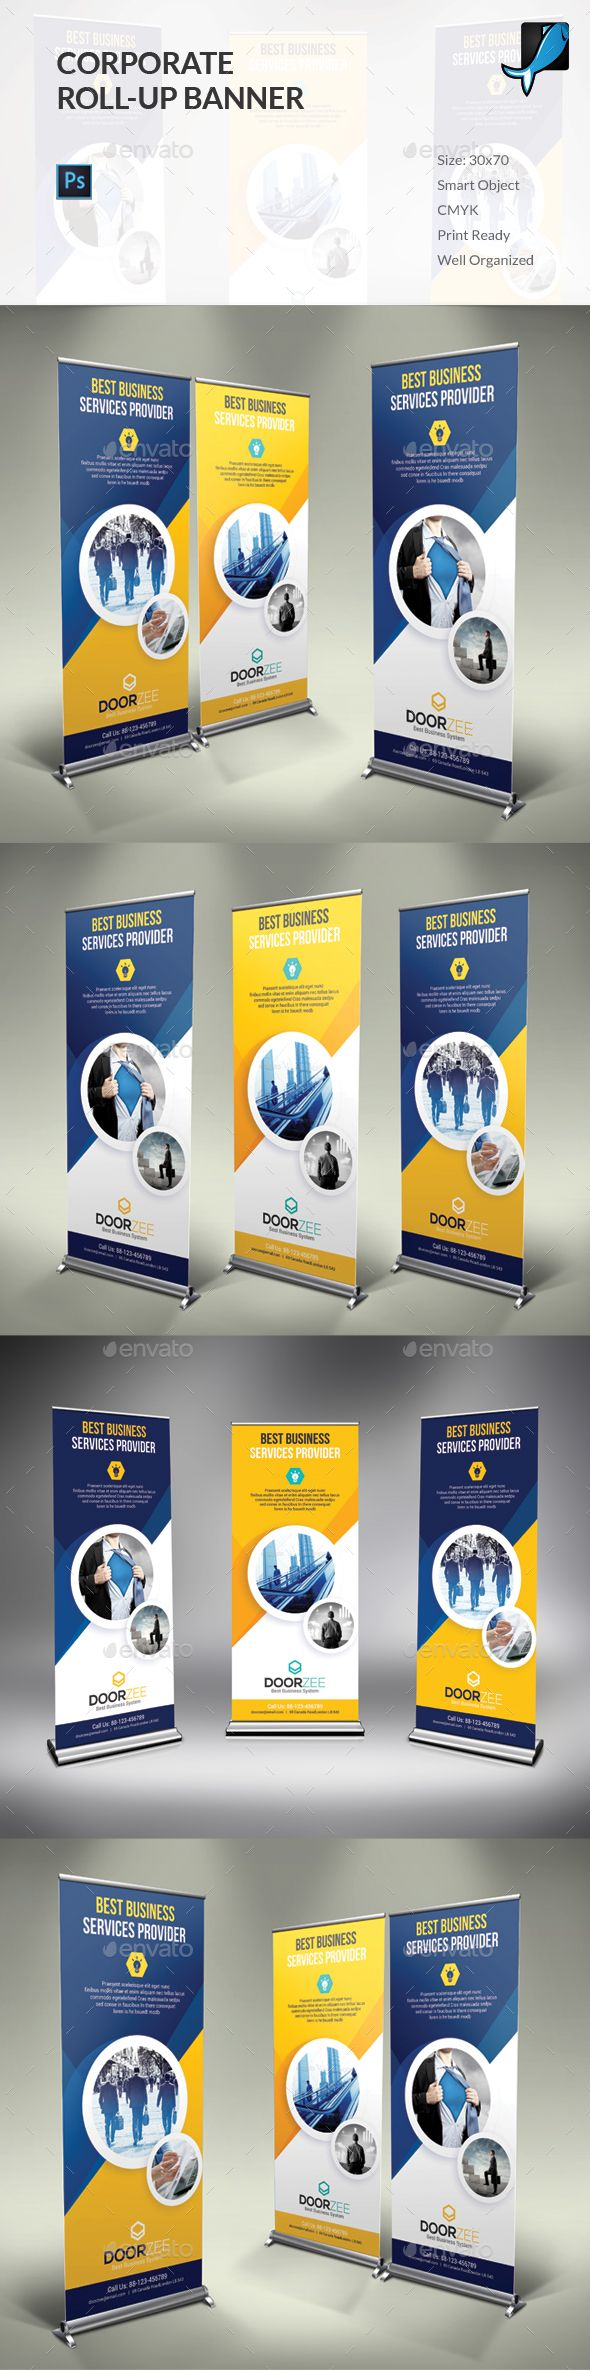 Banner Design Ideas banner design Corporate Rollup Banner